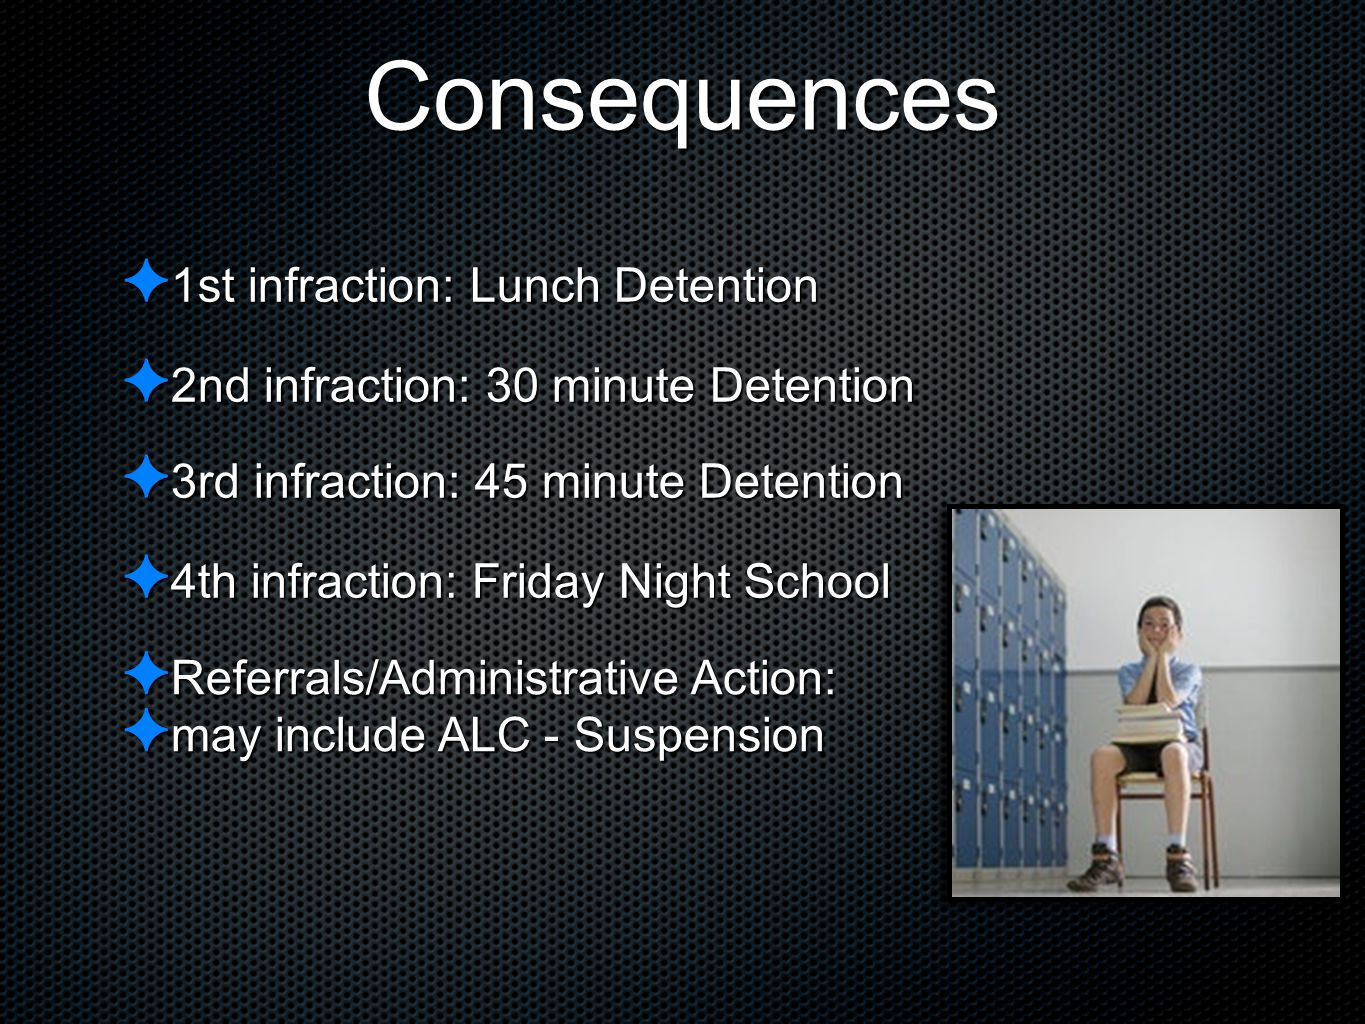 Consequences ✦ 1st infraction: Lunch Detention ✦ 2nd infraction: 30 minute Detention ✦ 4th infraction: Friday Night School ✦ Referrals/Administrative